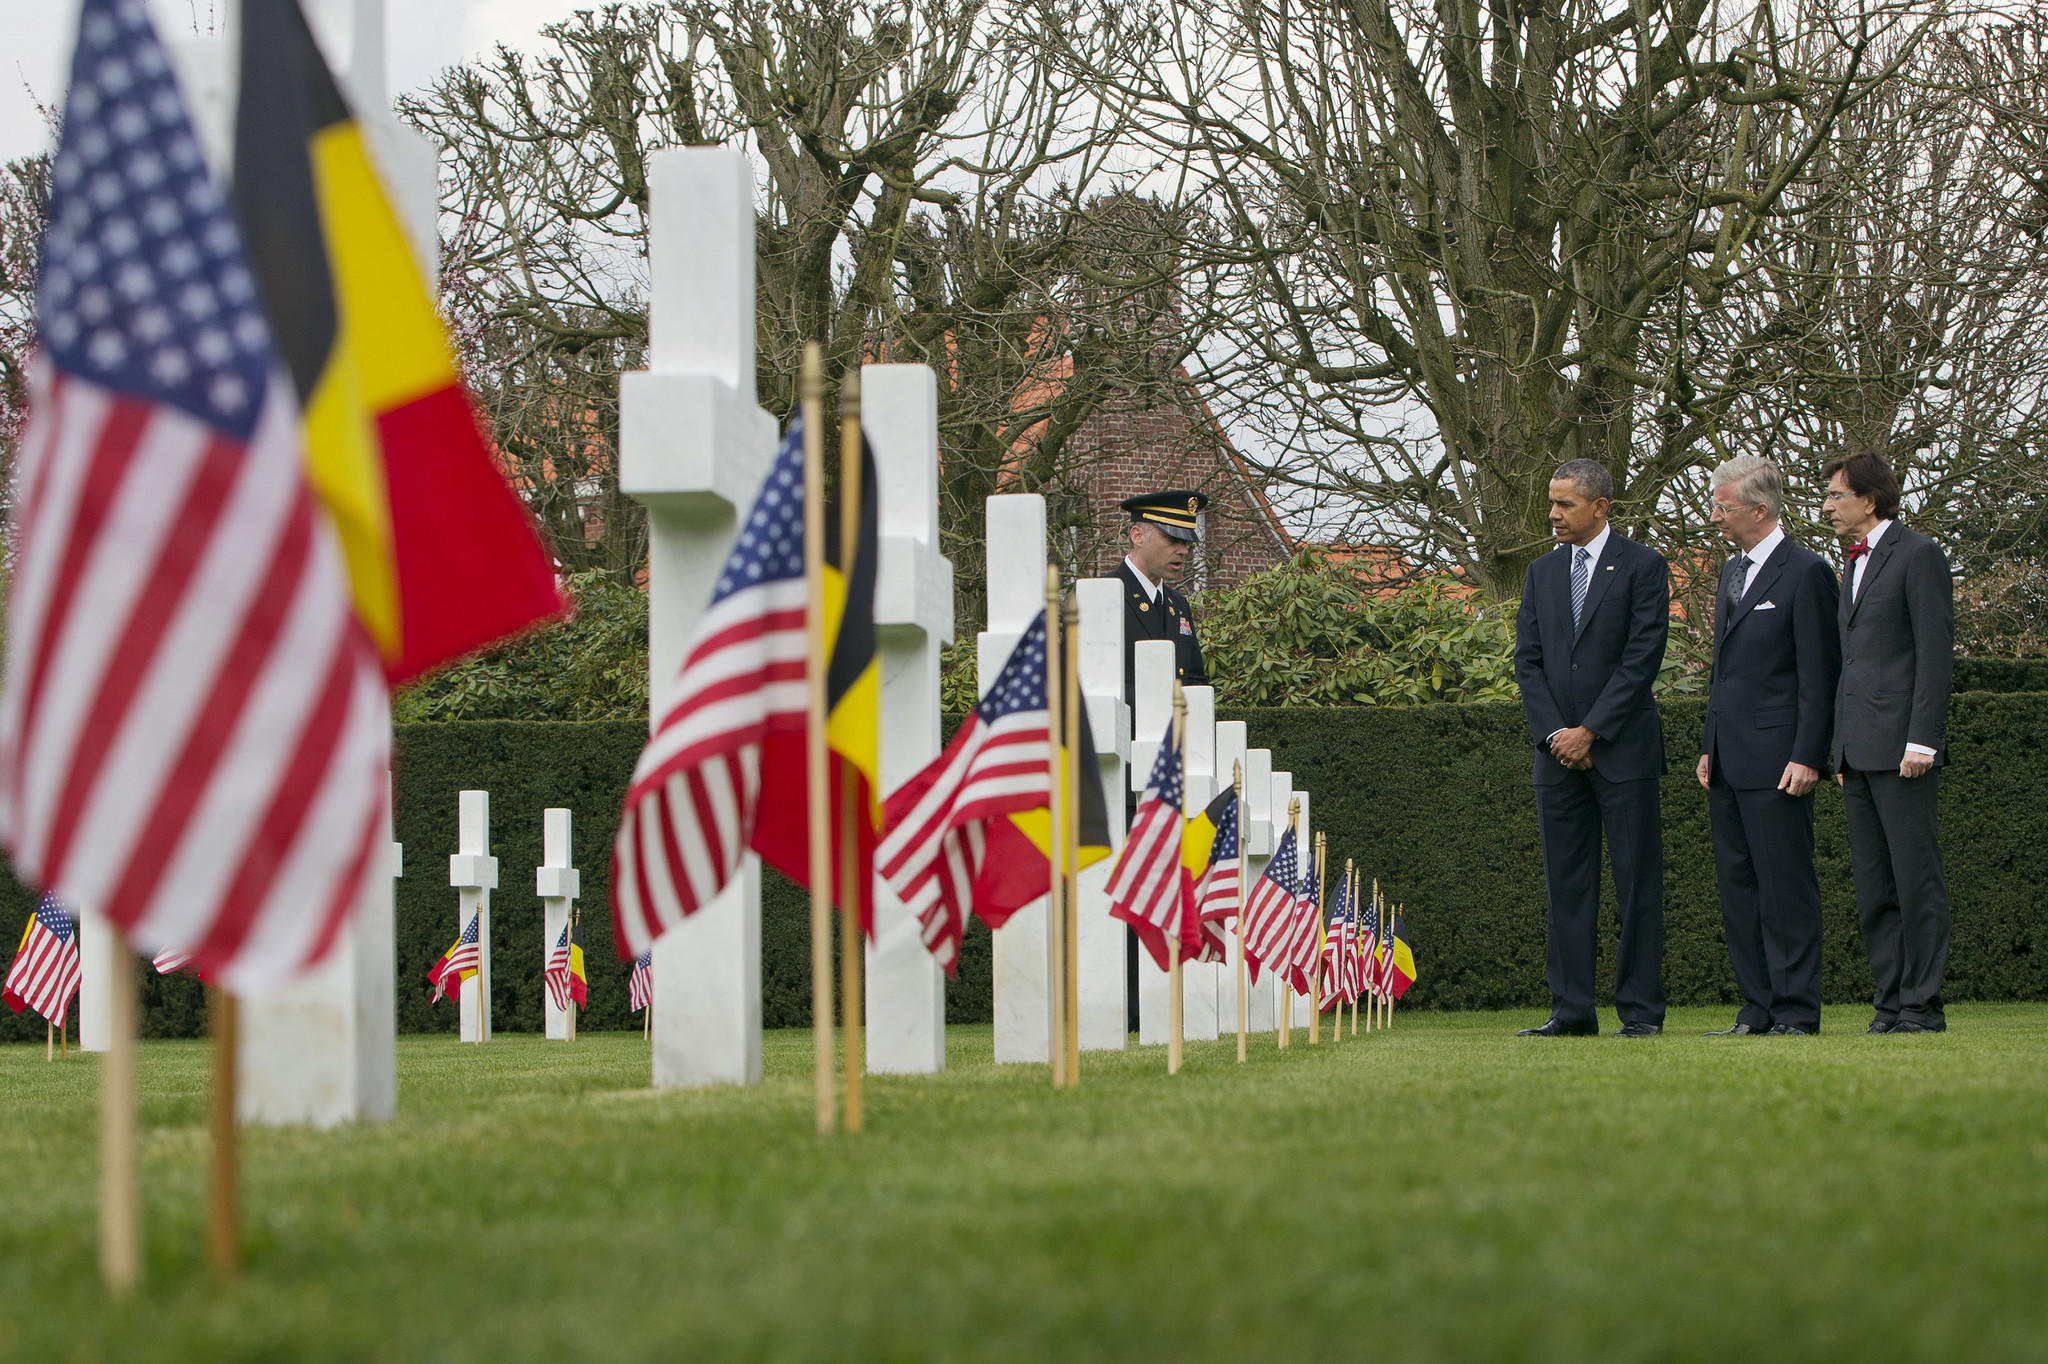 President Obama tours the American cemetery at Flanders Field with Belgian King Philippe and Belgian Prime Minister Elio Di Rupo.